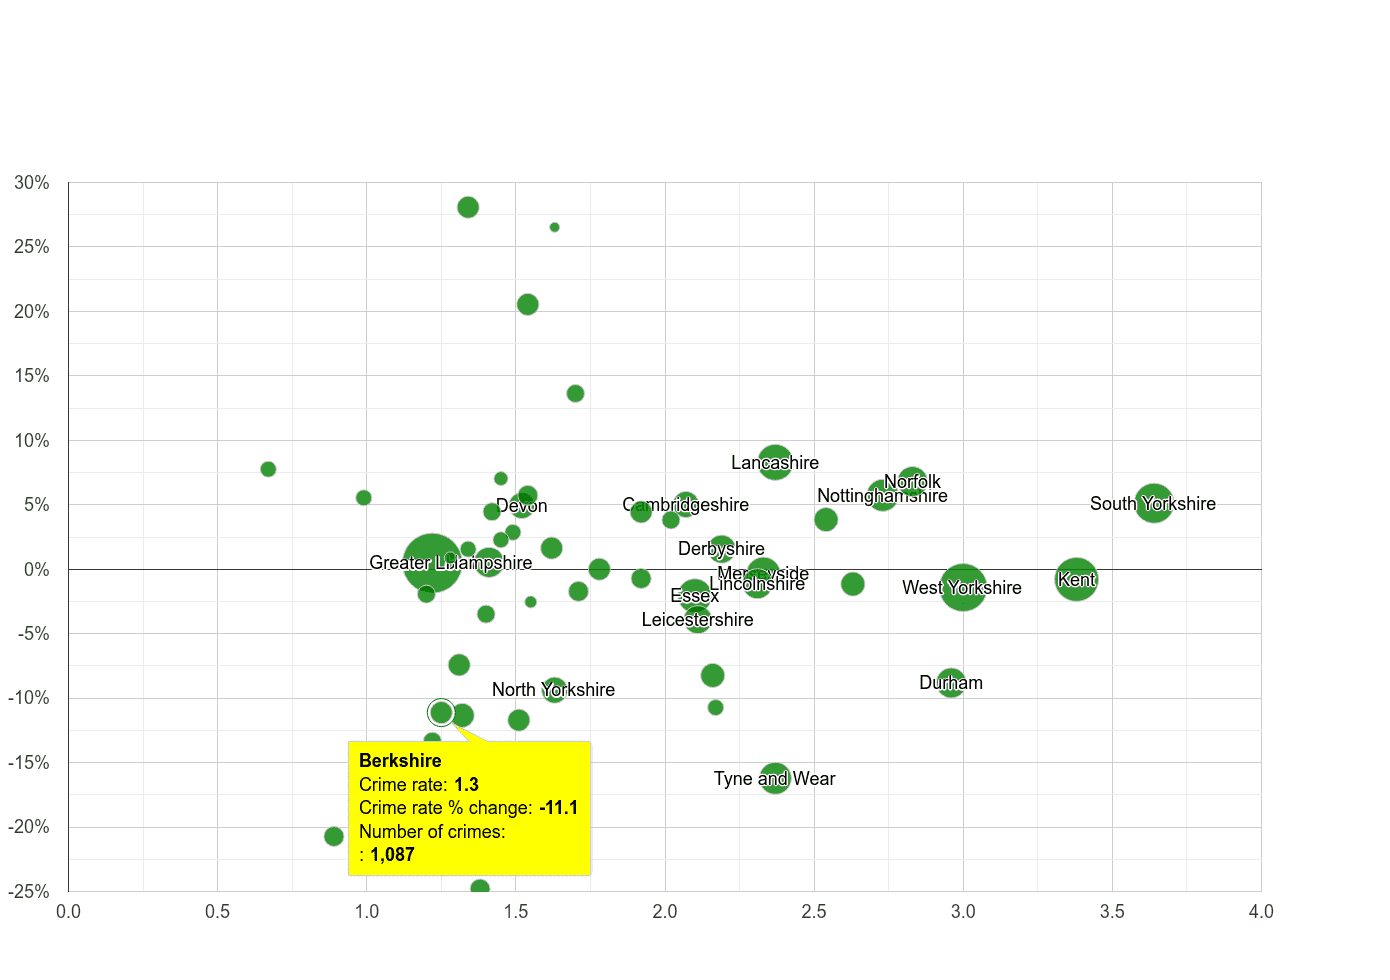 Berkshire other crime rate compared to other counties